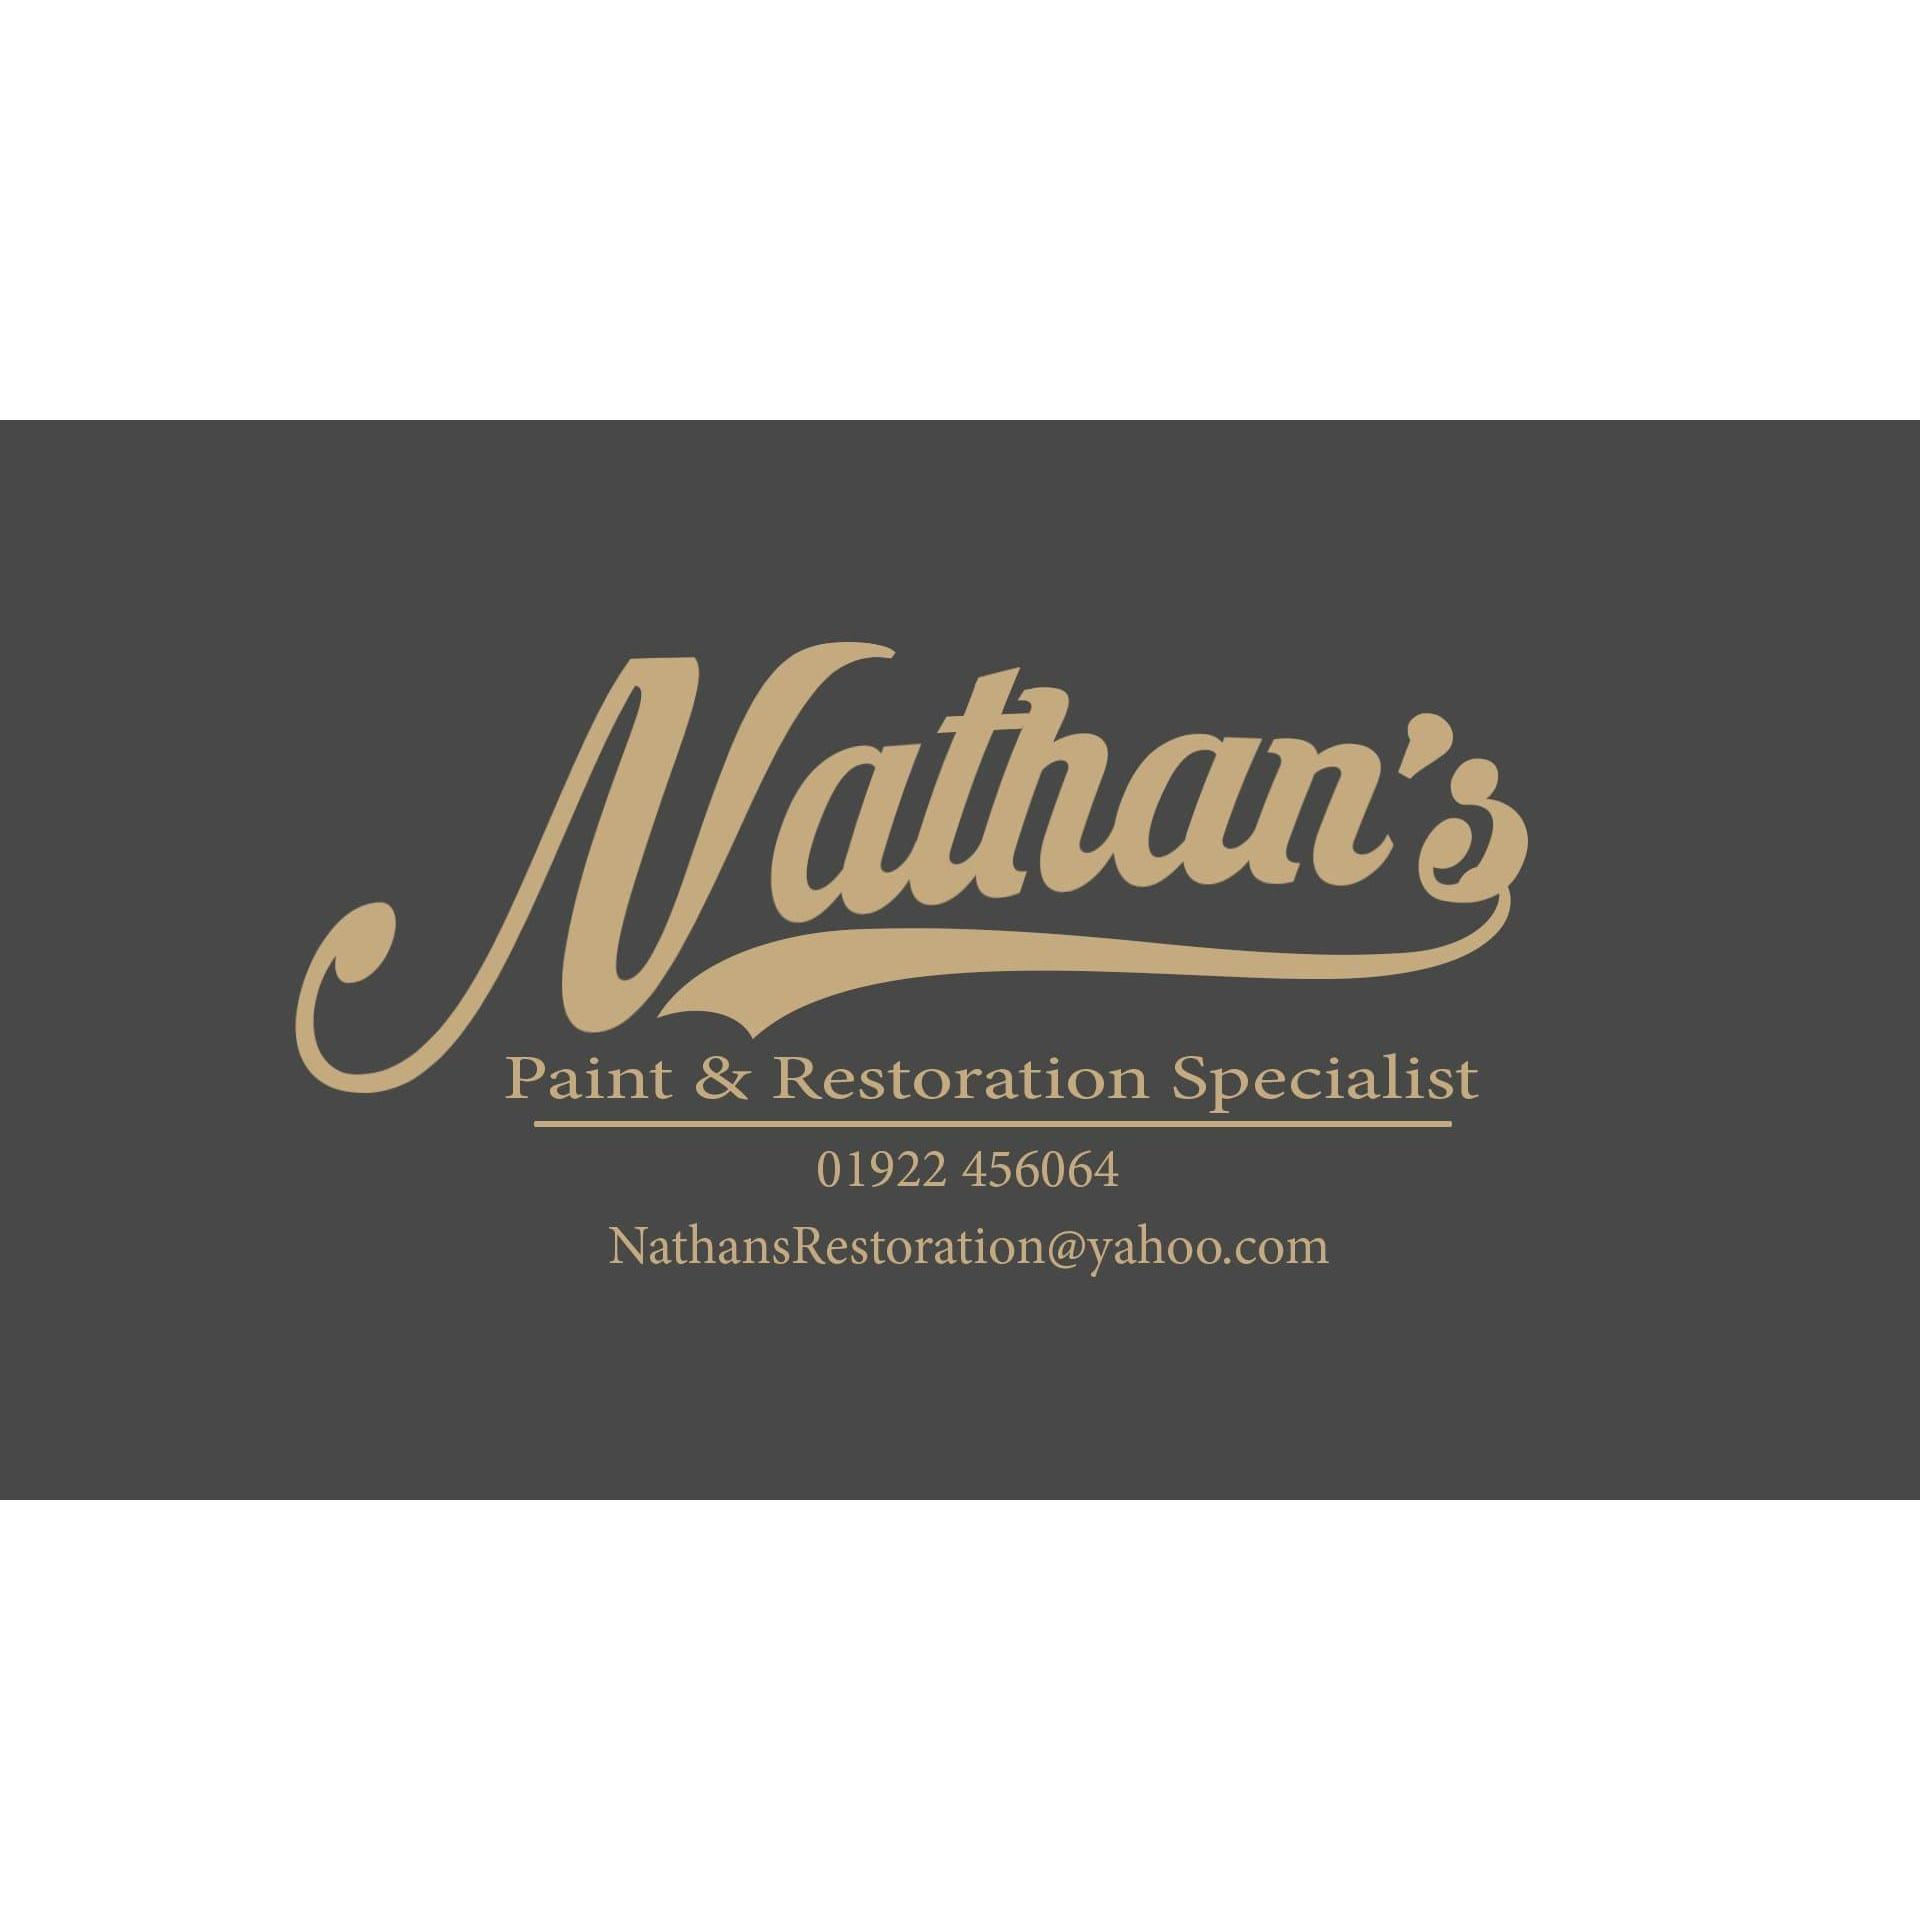 Nathan's Paint & Restoration Specialists Ltd - Walsall, West Midlands WS9 8BG - 01922 456064 | ShowMeLocal.com